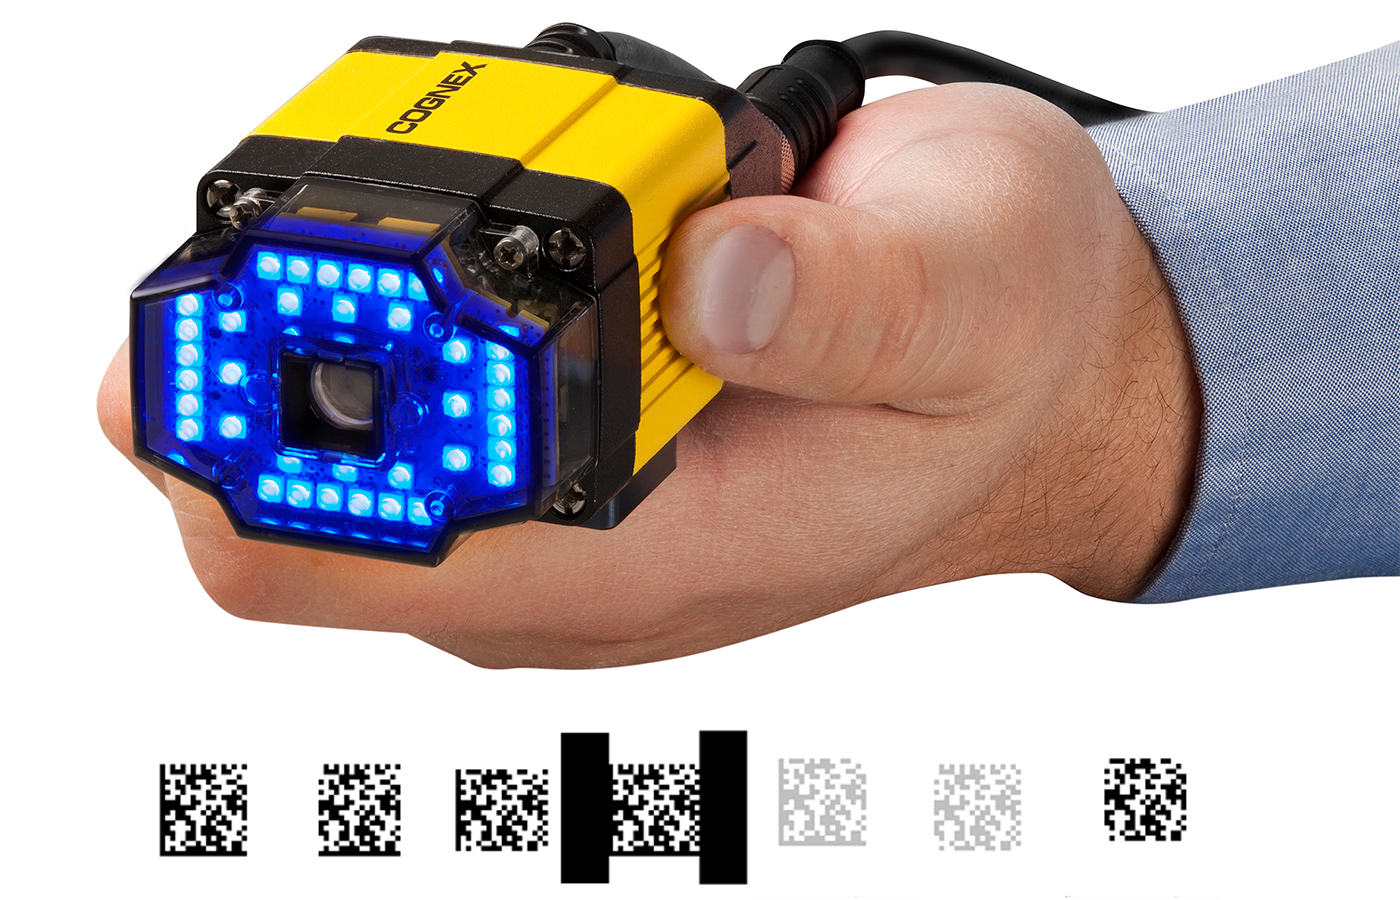 hand holding dataman 300 series blue light barcode reader with PowerGrid reading example